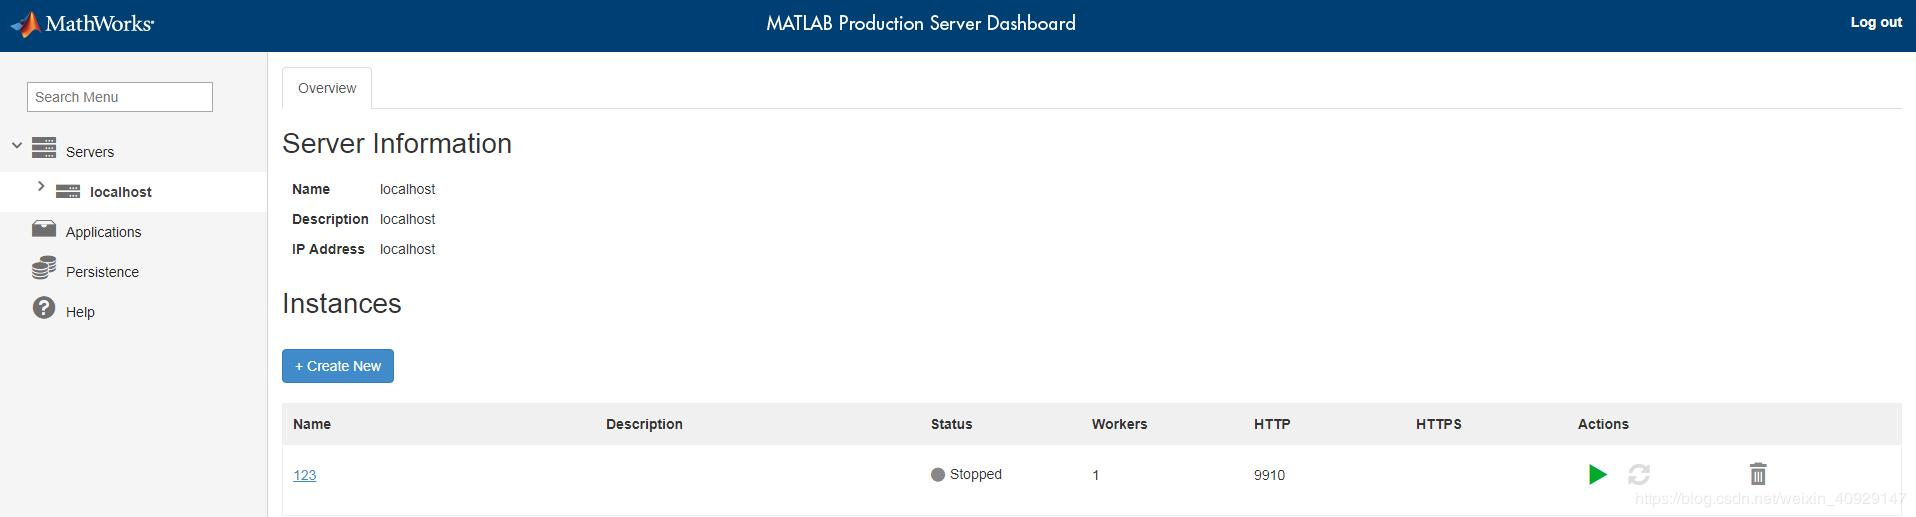 Download, install and configure matlab production server